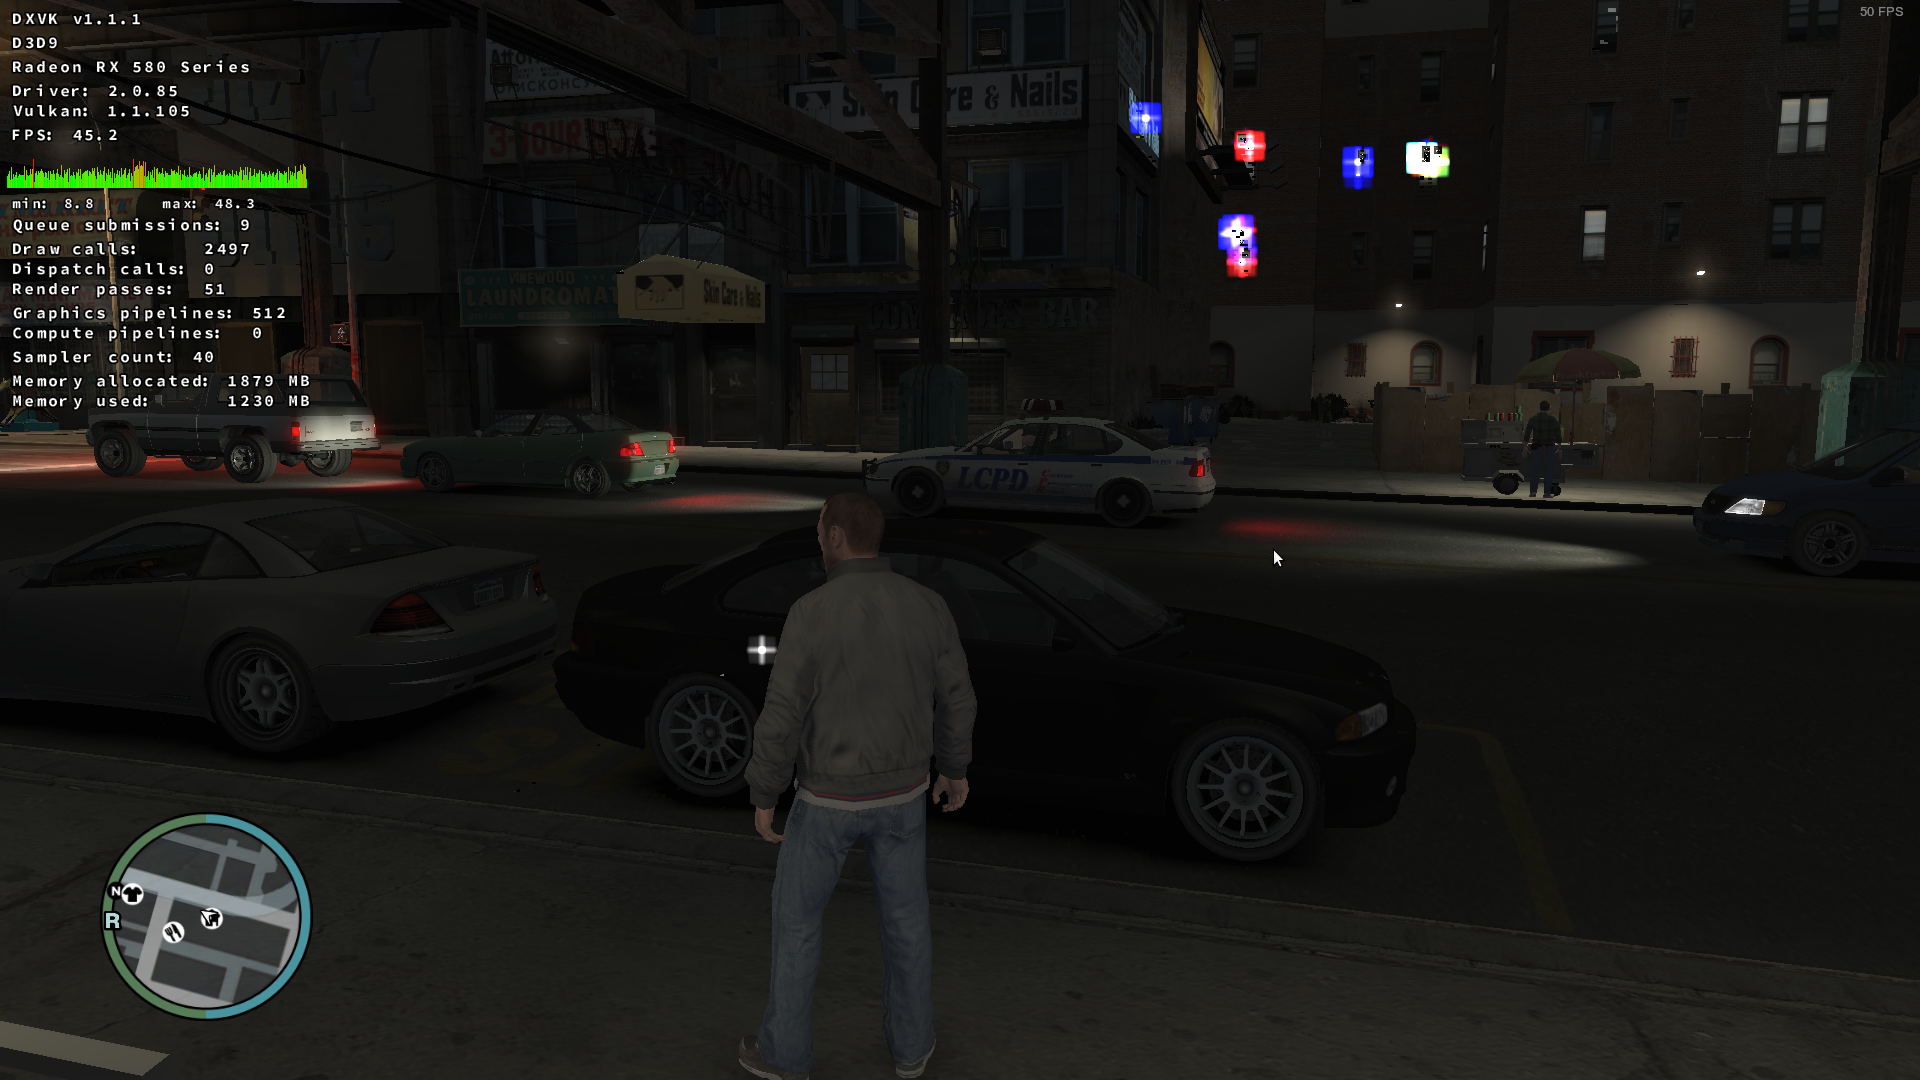 GTA IV - Rendering issues on AMD and Intel